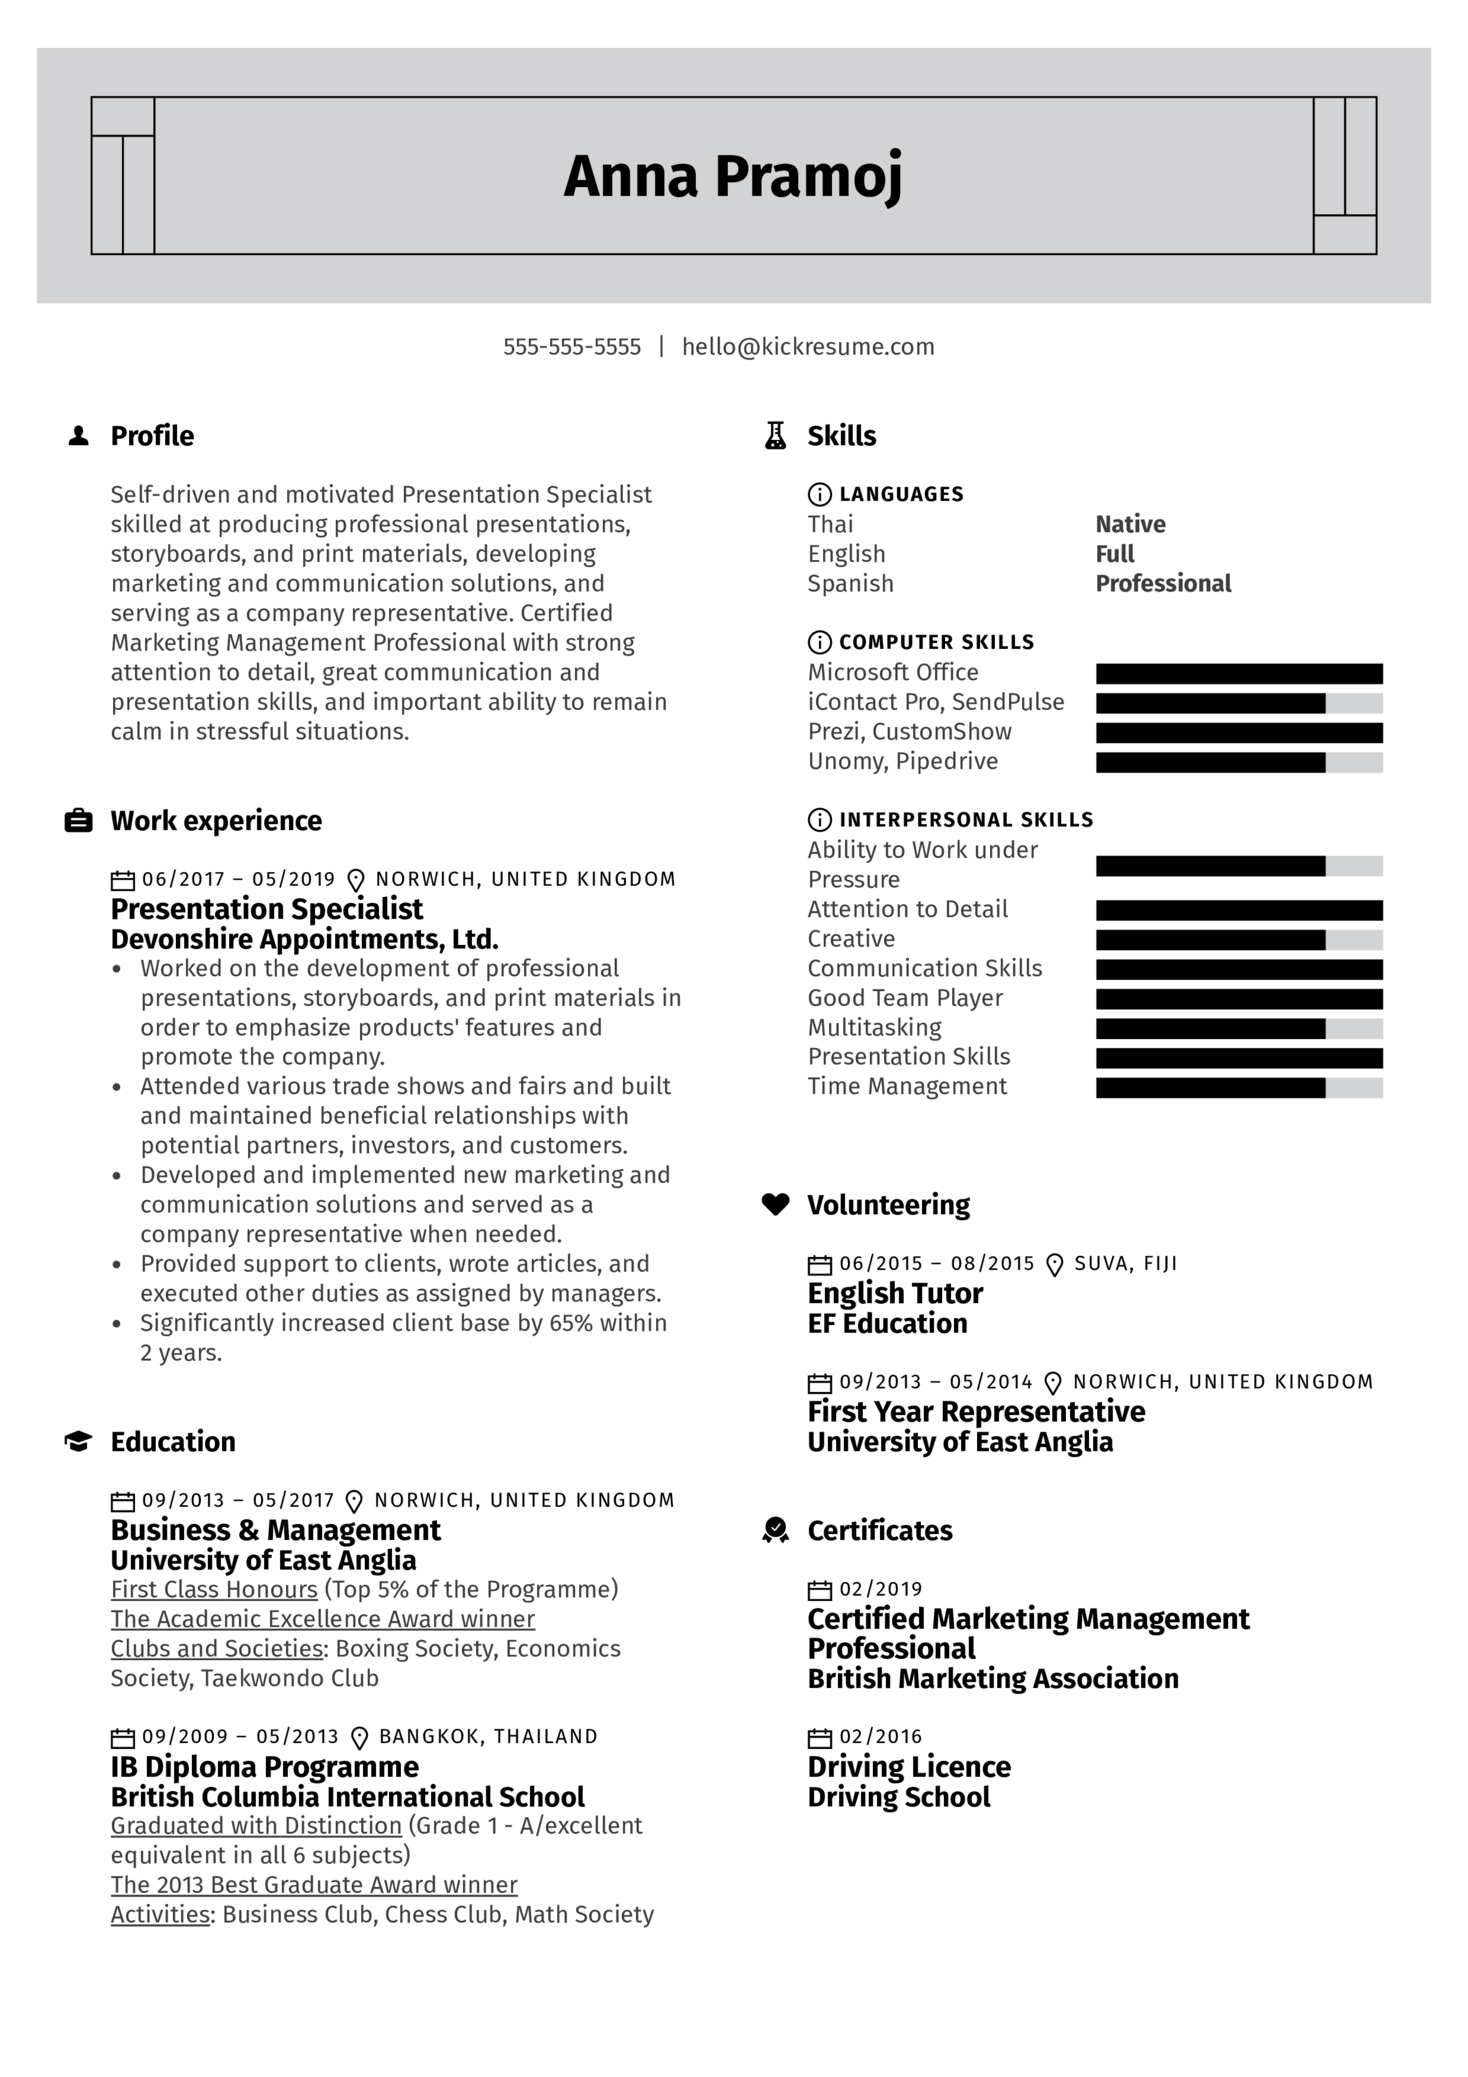 Presentation Specialist Resume Example